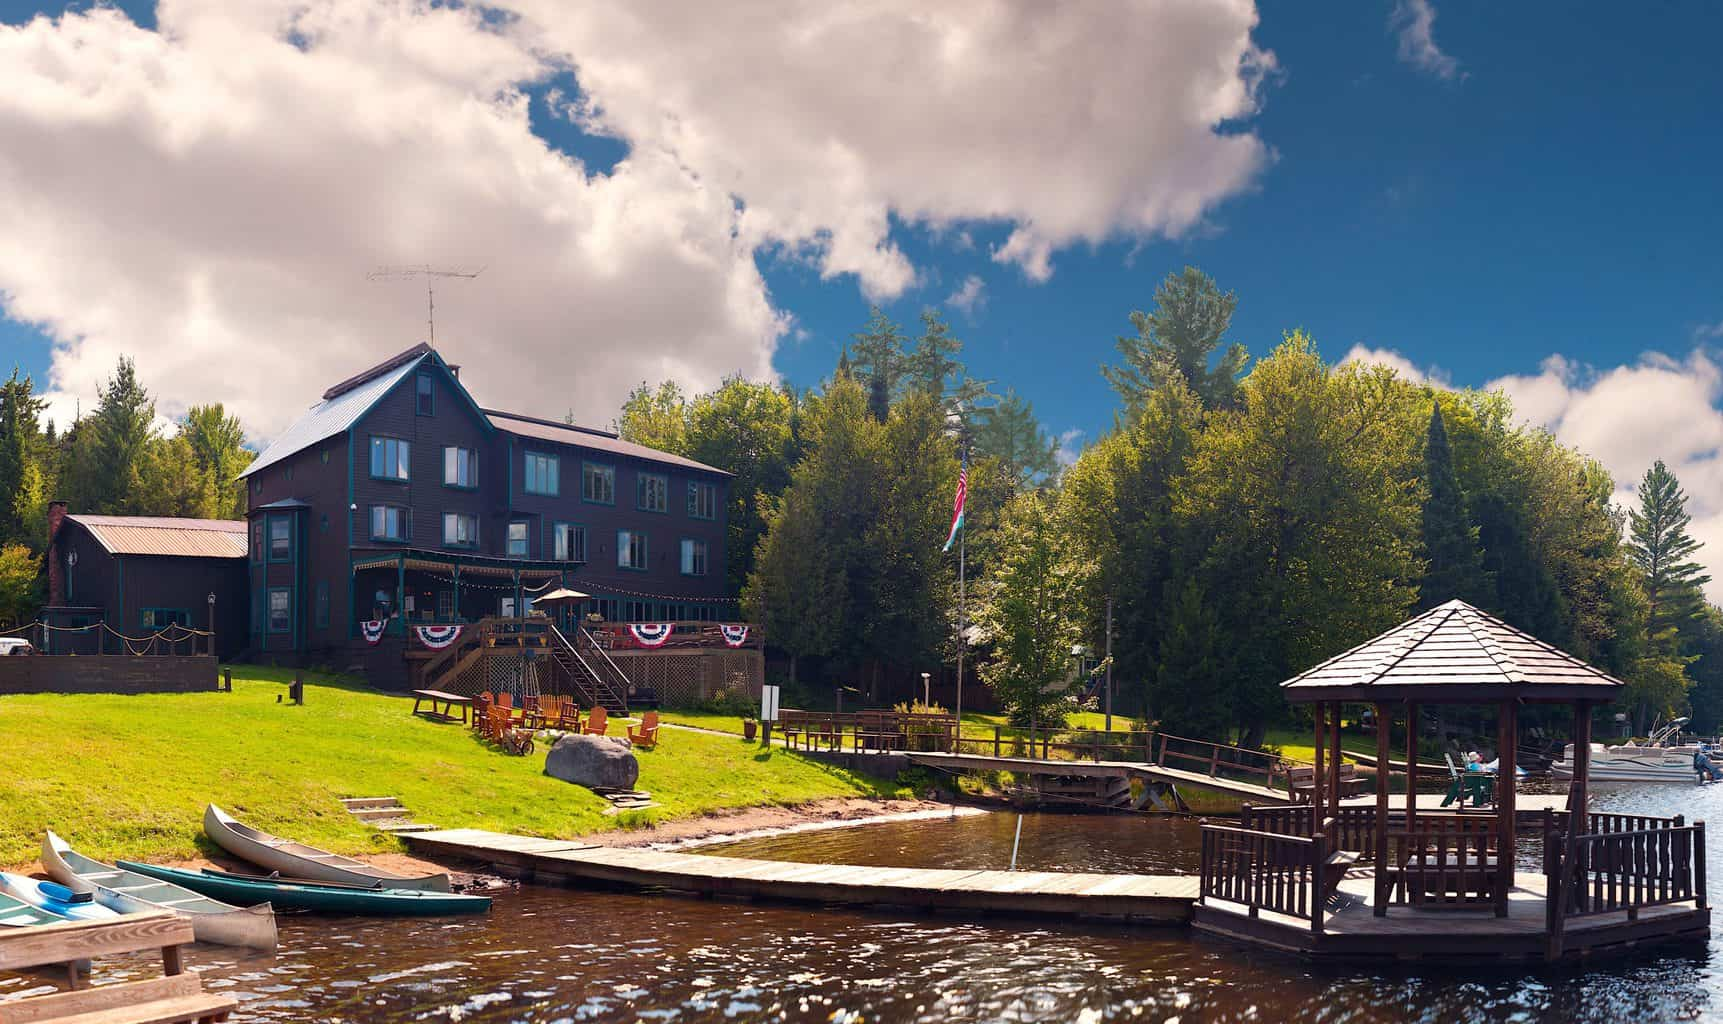 A view of Big Moose Inn nestled along the shores of Big Moose Lake.